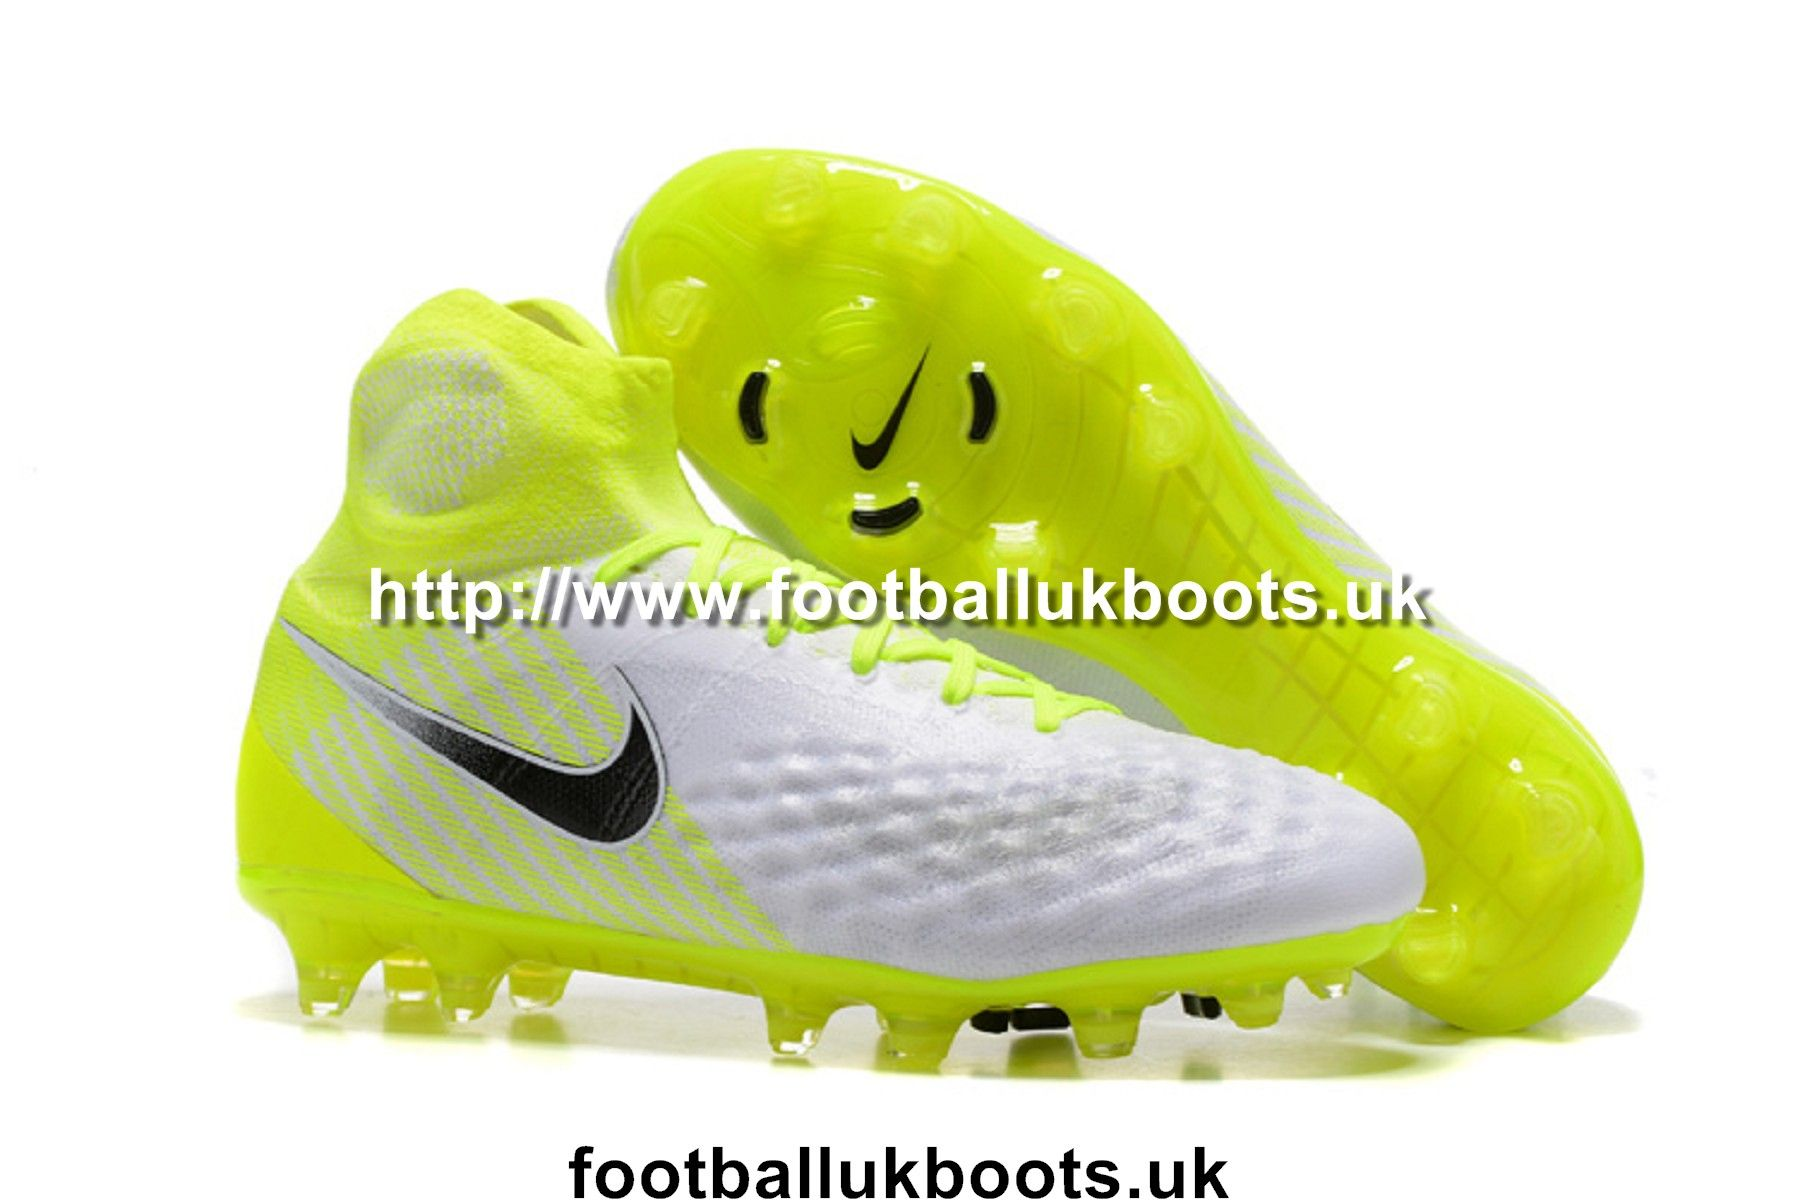 sports shoes 2531d ed710 Coolest Nike Magista Obra II FG Football Boots - White Black Volt